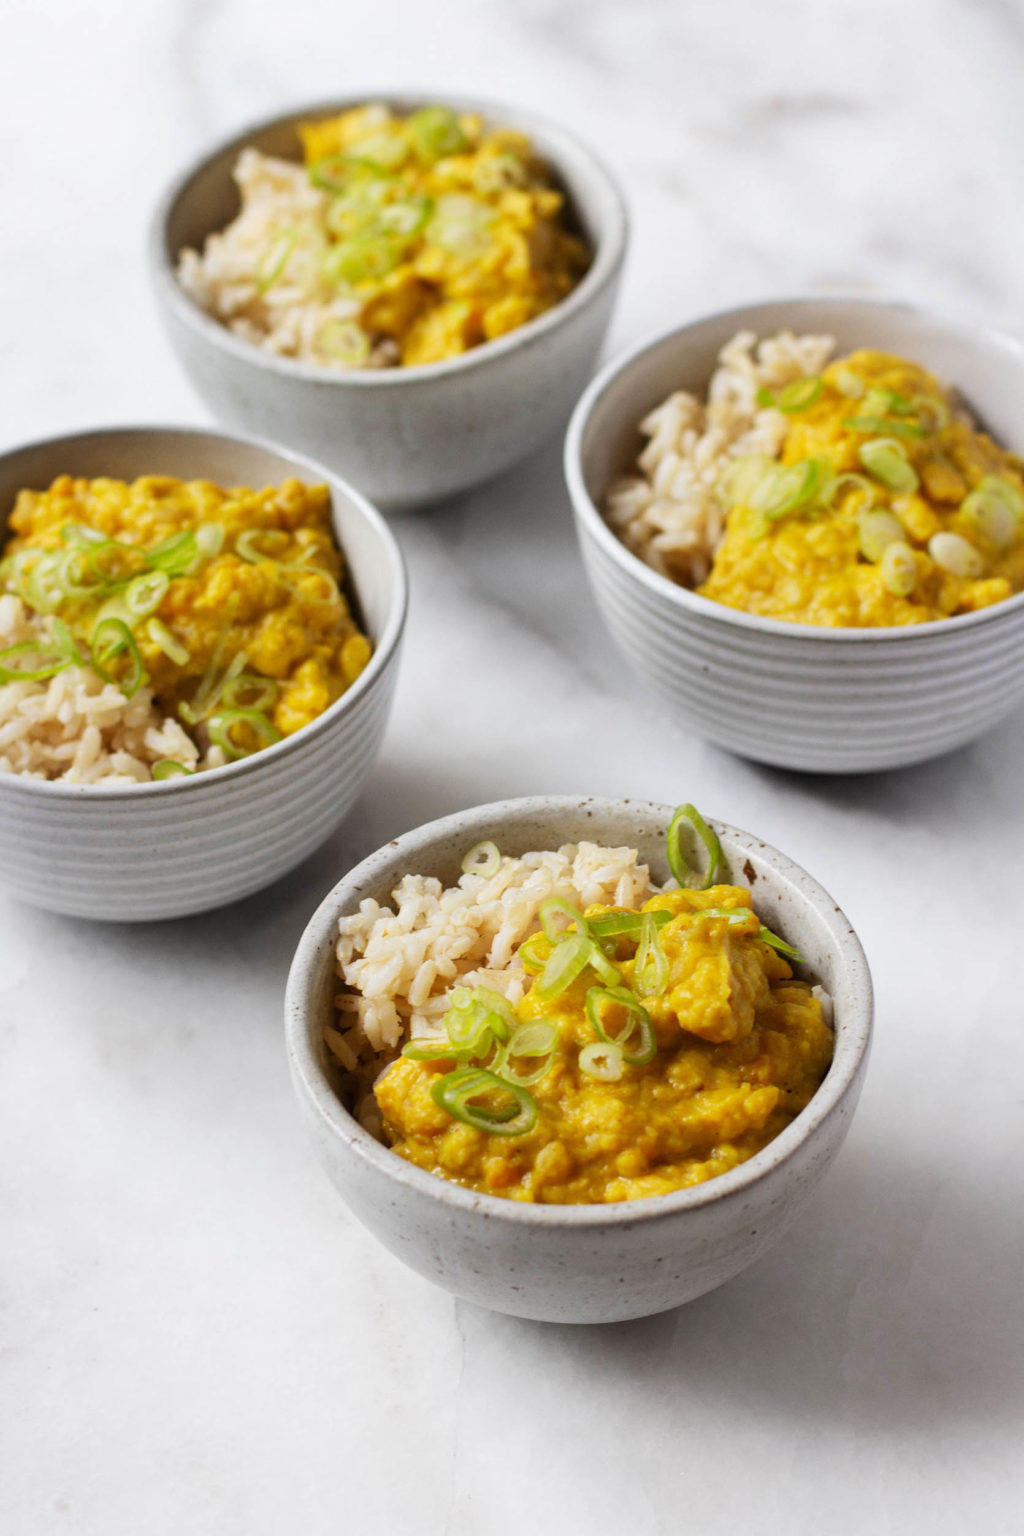 Several small bowls of a savory vegan breakfast porridge, prepared with split peas and coconut and served over rice.